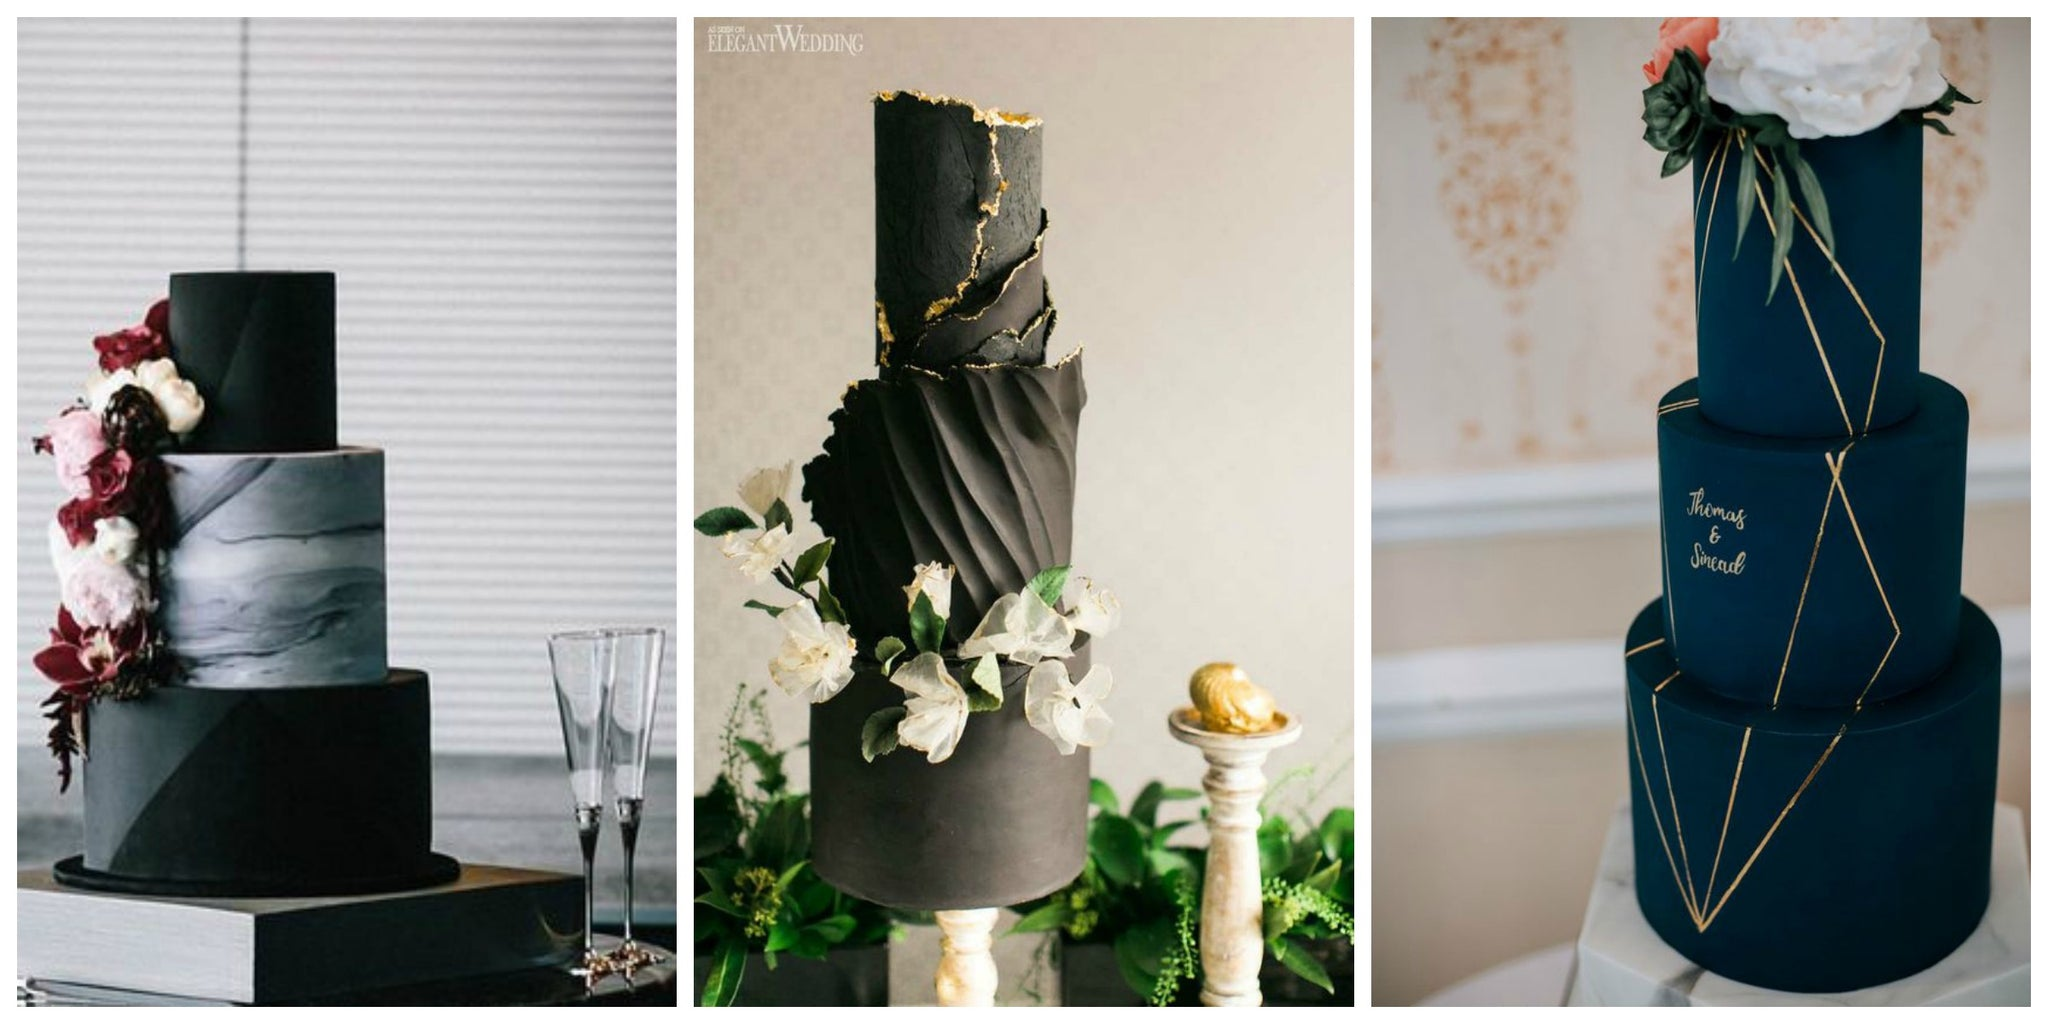 Black Wedding Cakes In Geometric Shapes